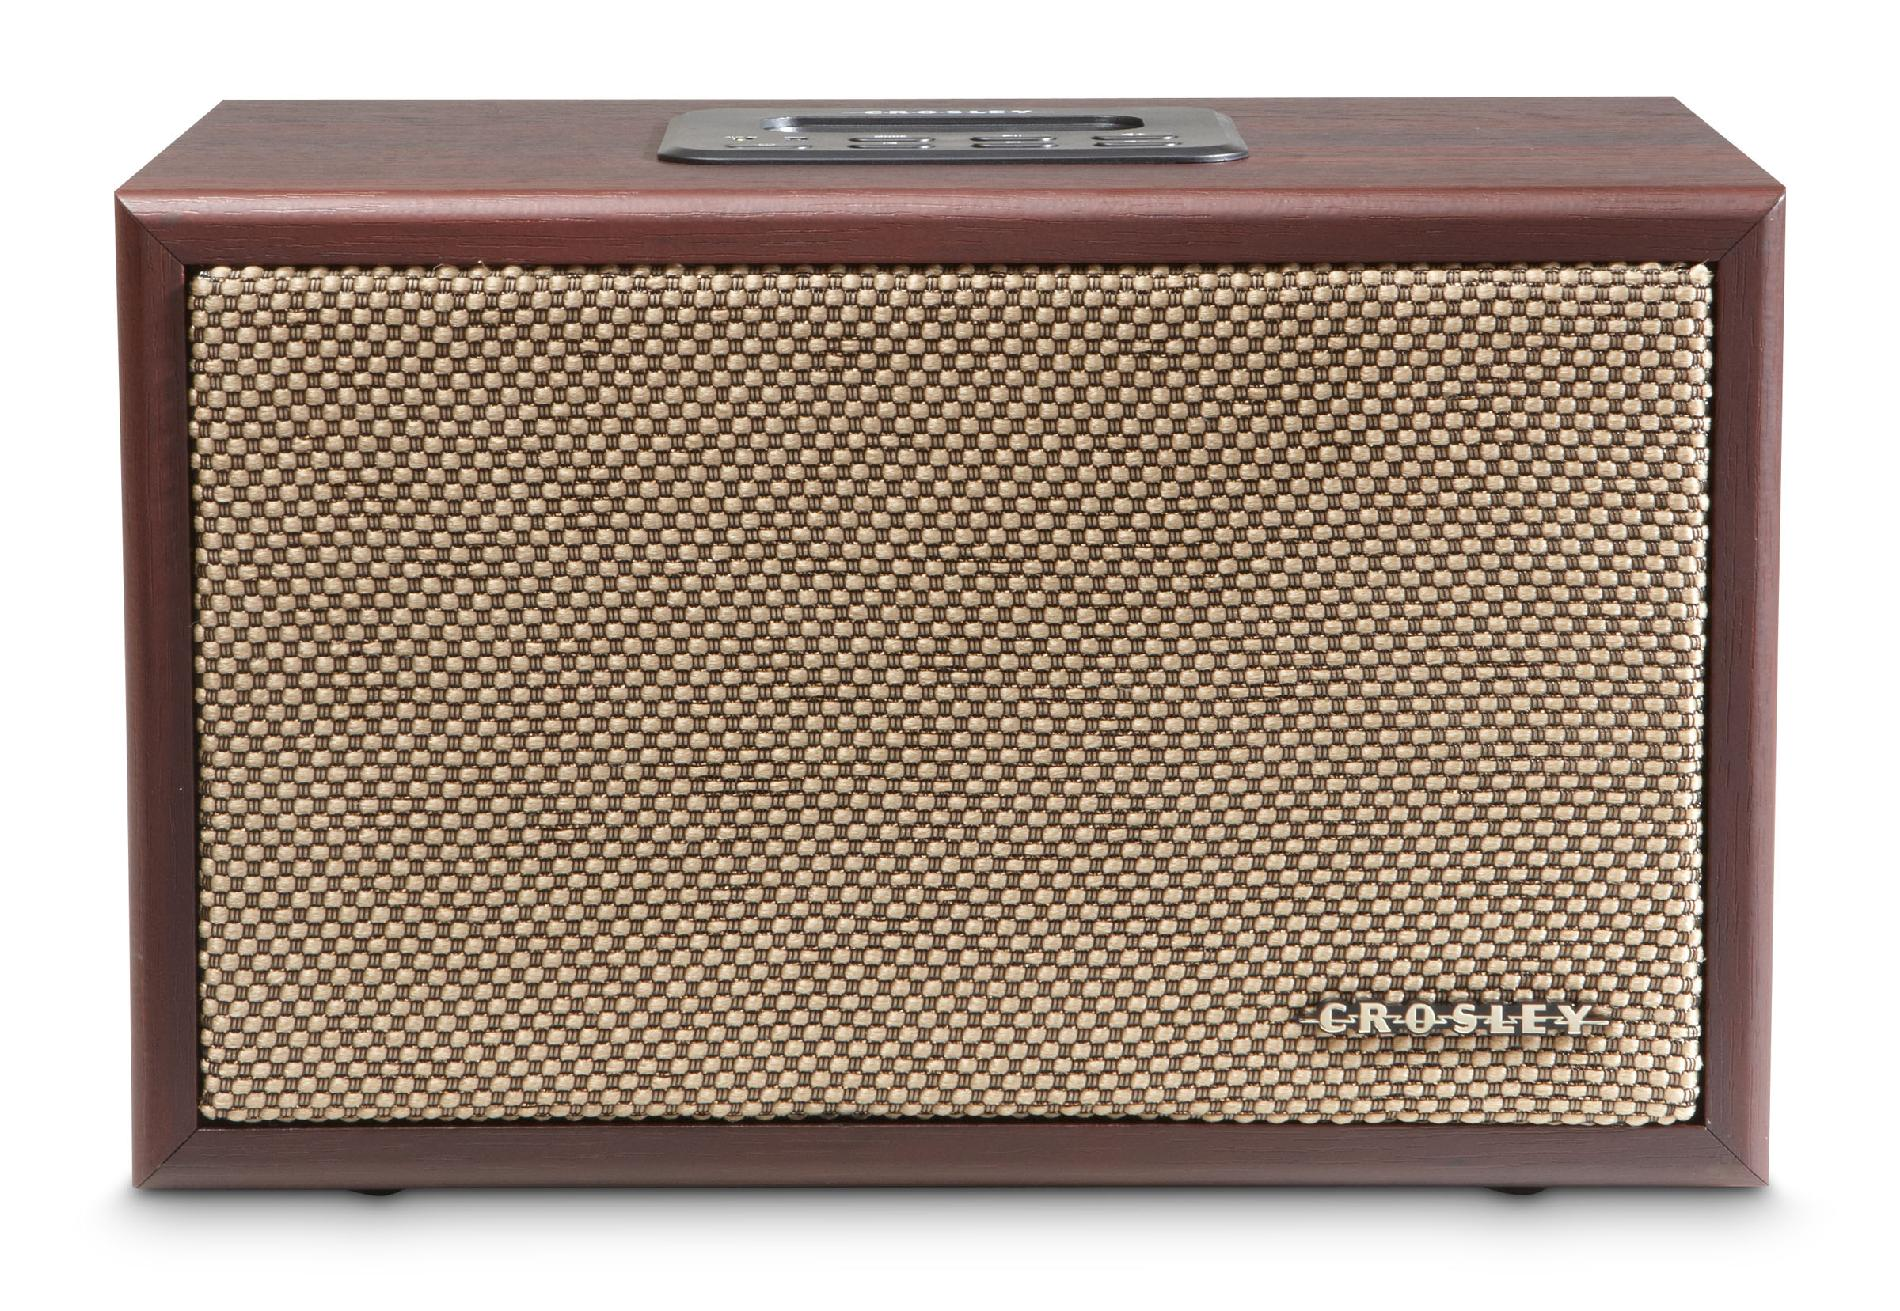 Crosley Radio Crosley Radio Cr3011a Ma Ideco